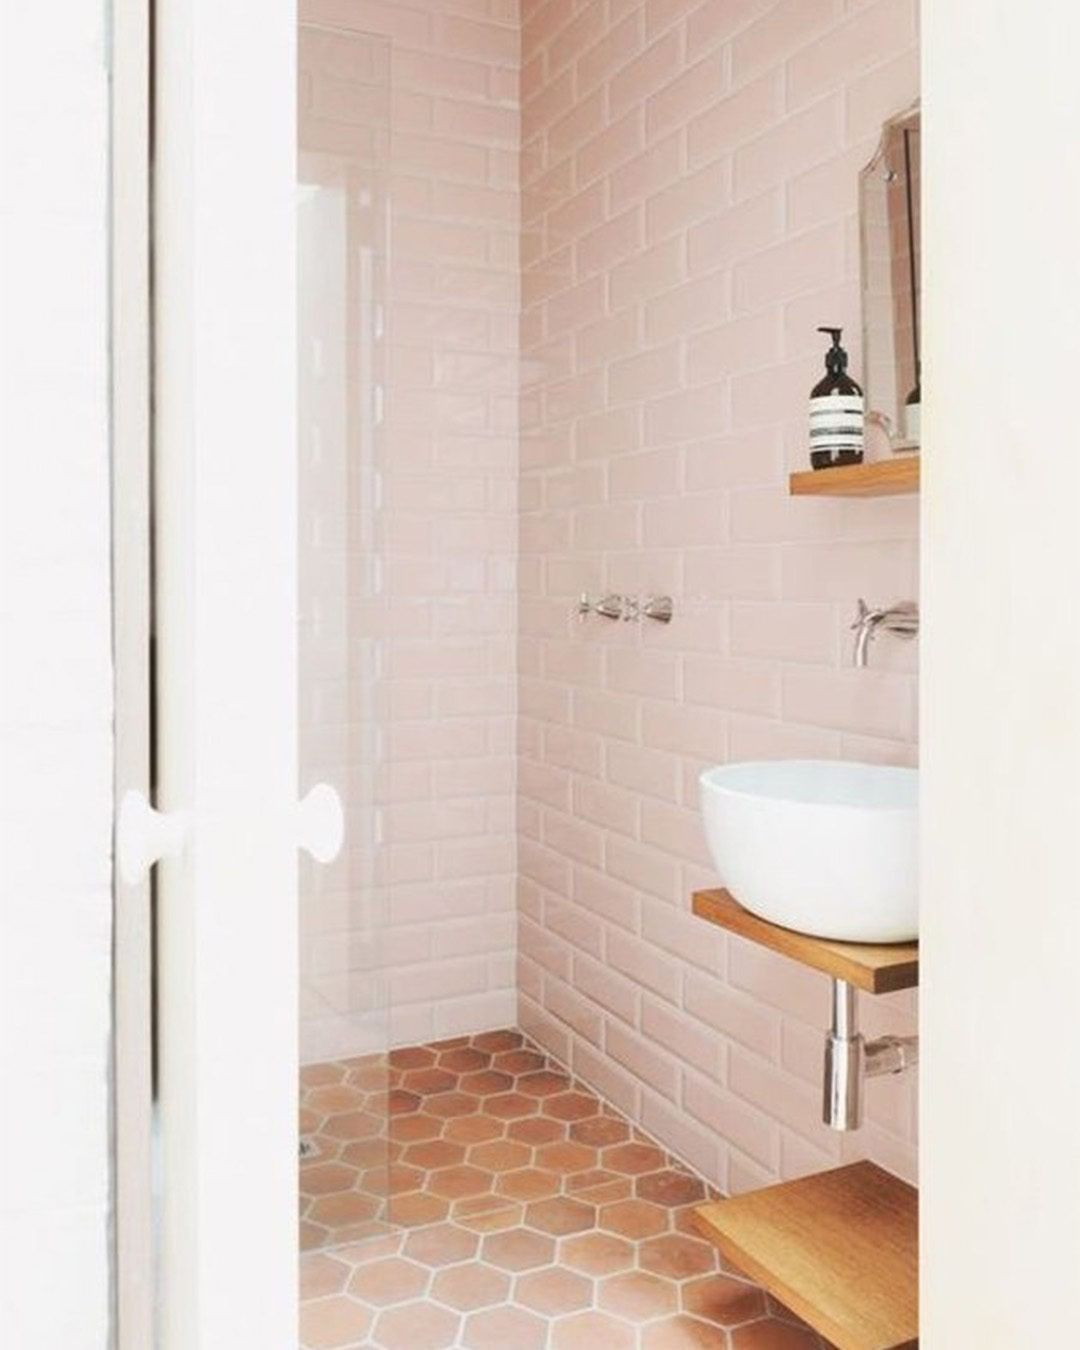 blush pink subway tile paired with